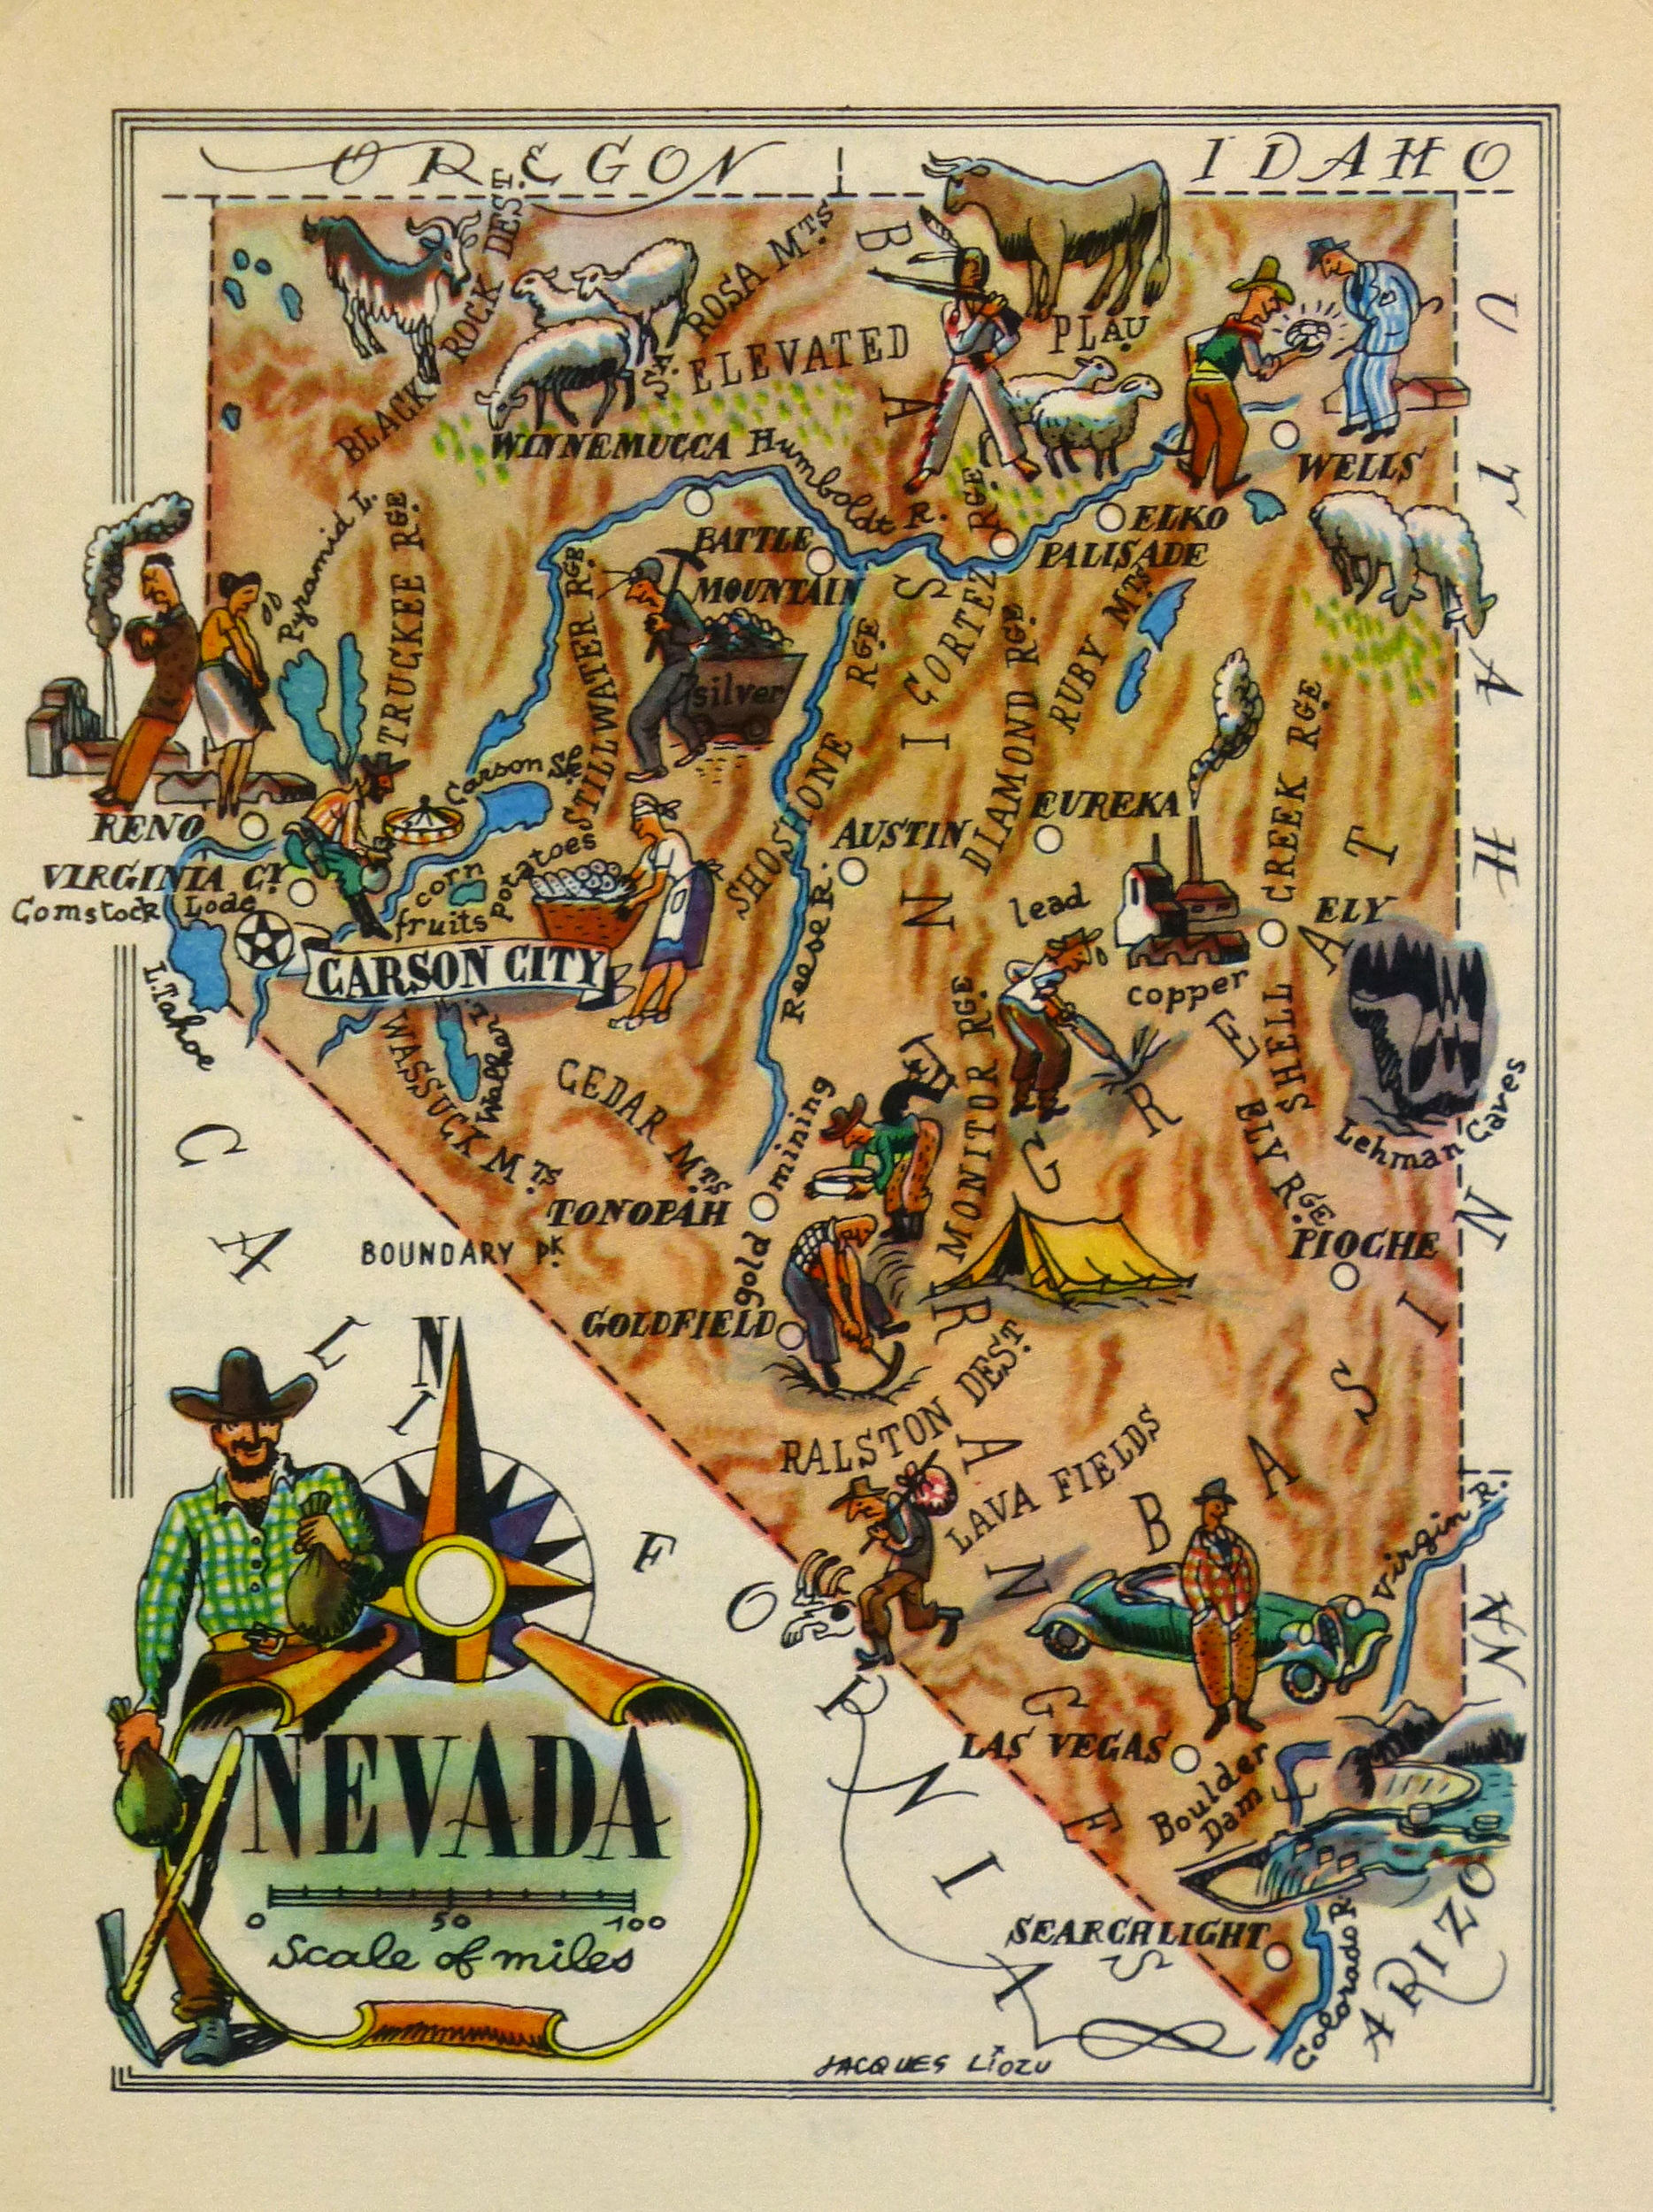 Nevada Pictorial Map, 1946-main-6246K